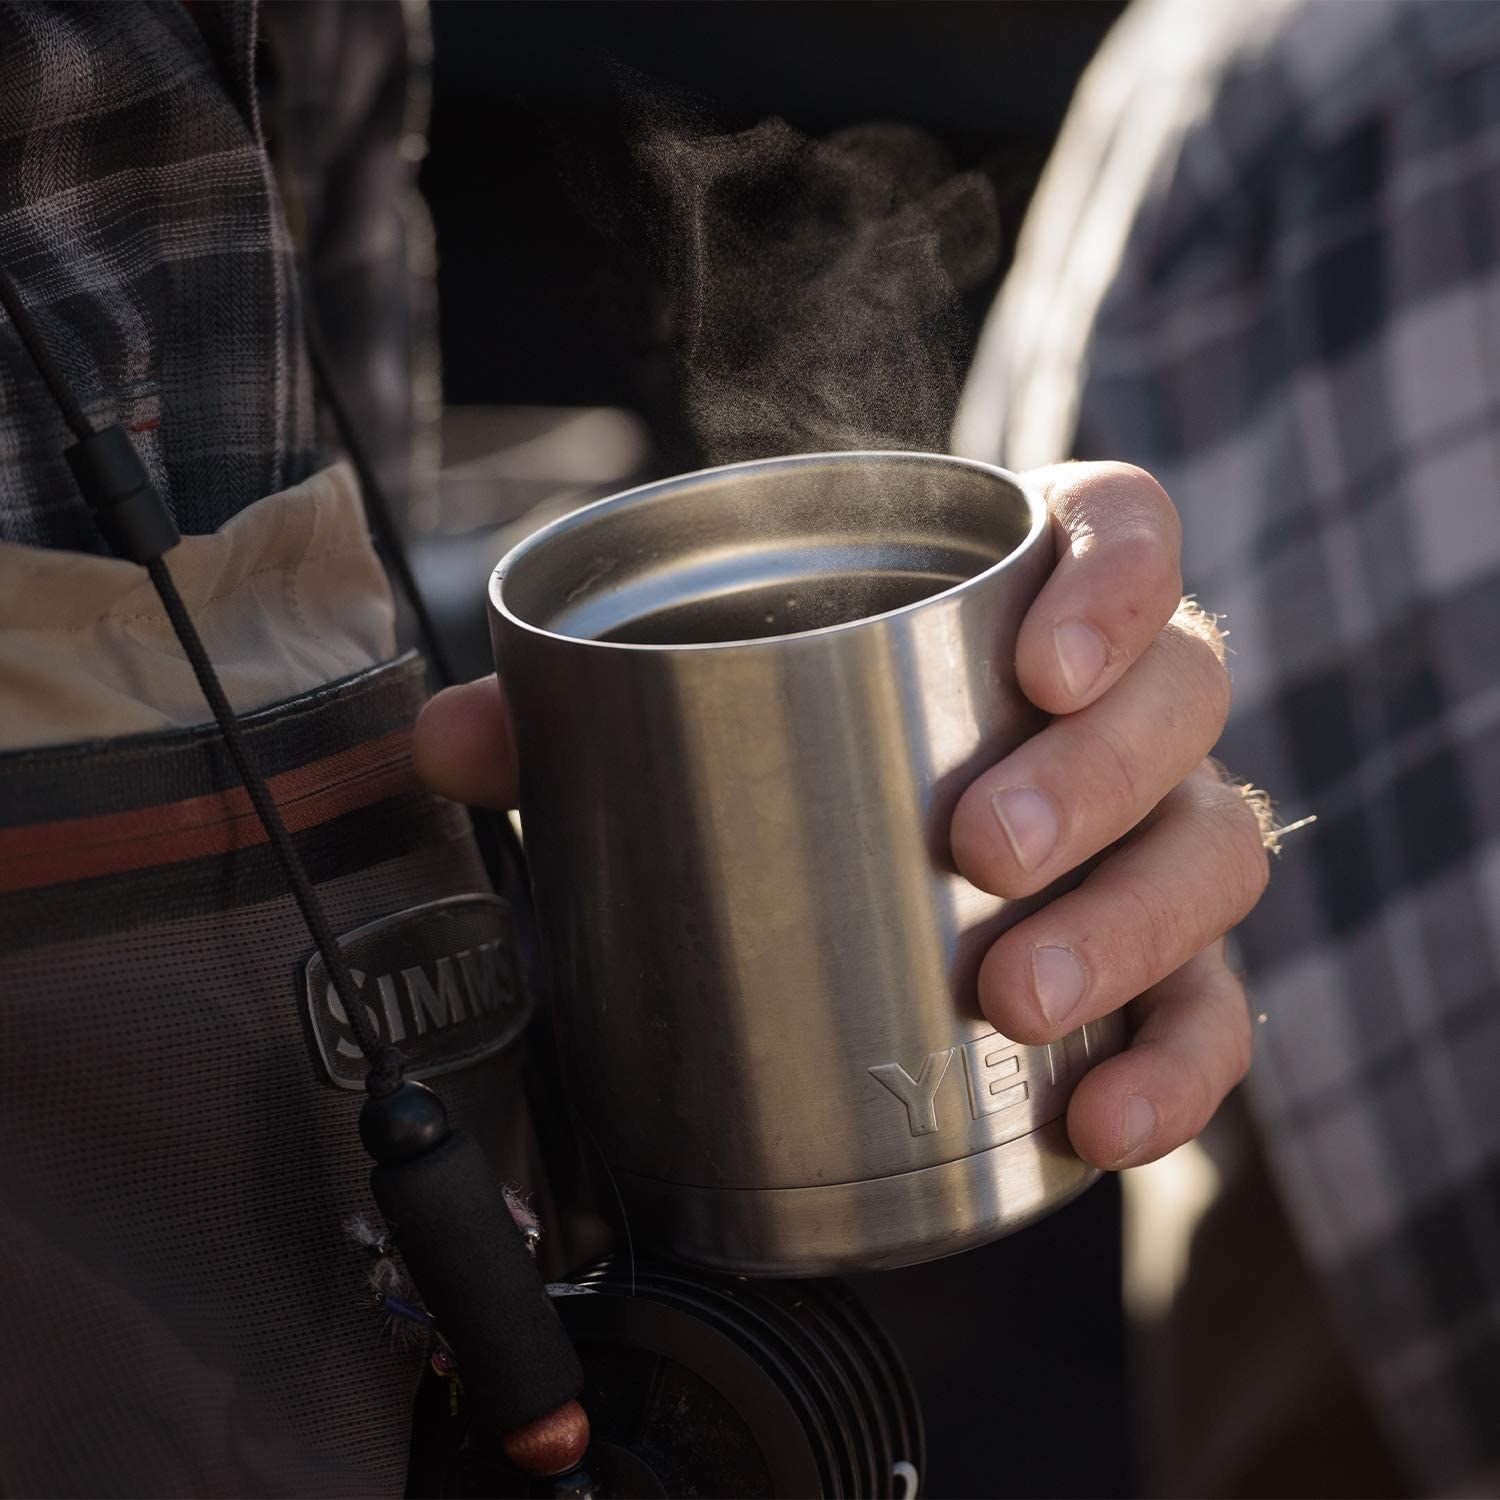 Product photo showing YETI rambler in person's hand. It's about the size of a coffee cup and can easily be held with one hand.